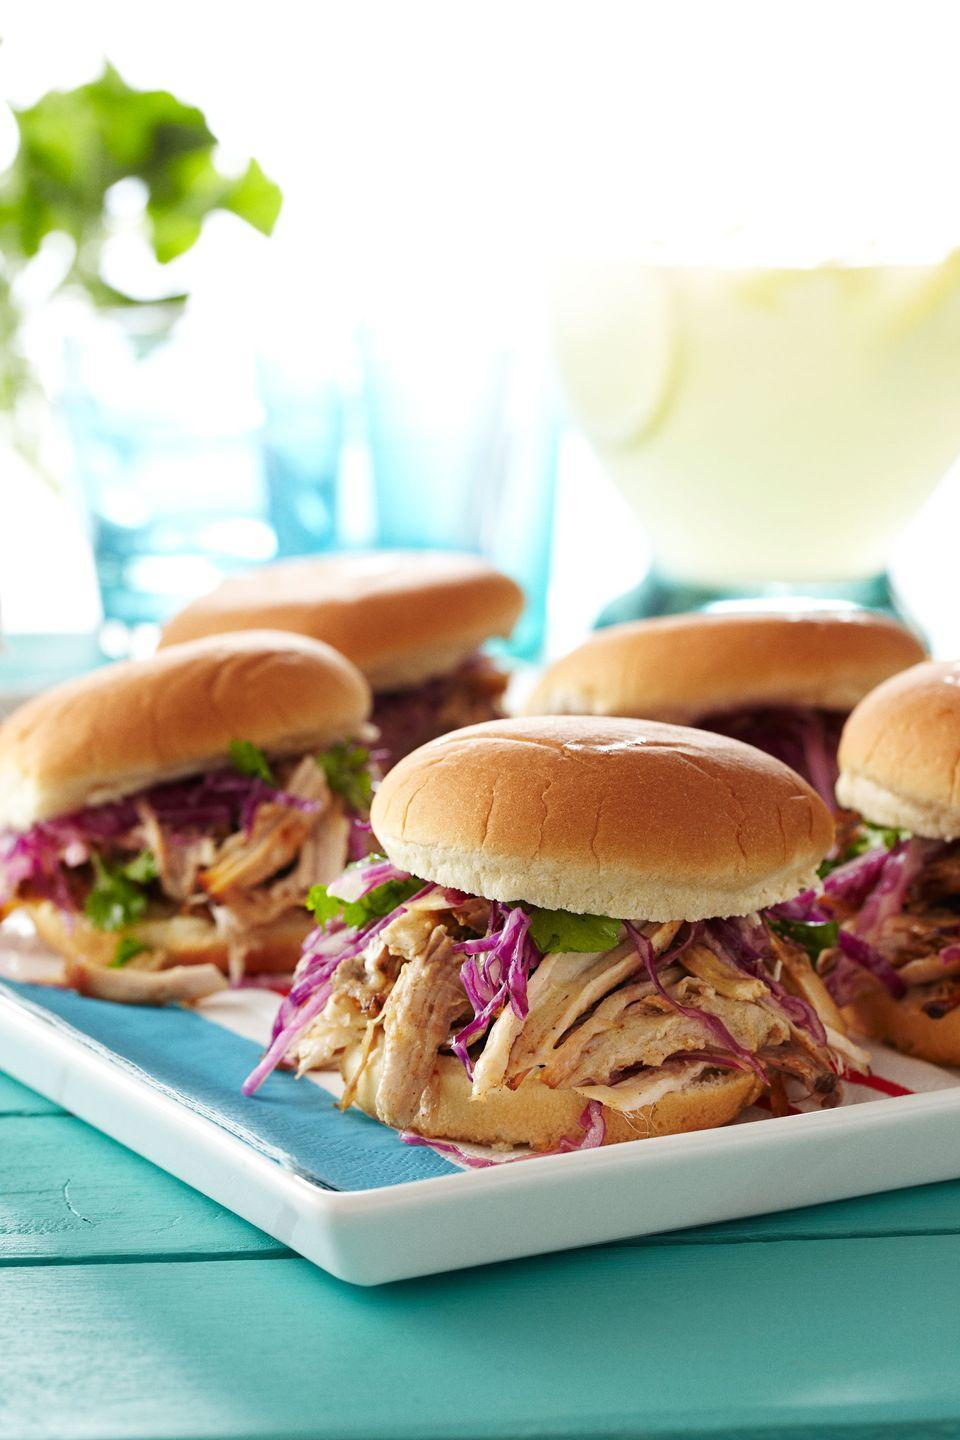 """<p>It doesn't get much easier than these slow-cooked sandwiches topped with a quickie vinegar sauce. Looking for a challenge? We also have Bobby Flay's smoker instructions for the seasoned grill master. </p><p><a href=""""https://www.goodhousekeeping.com/food-recipes/a13789/pulled-pork-black-pepper-vinegar-recipe-ghk0712/"""" rel=""""nofollow noopener"""" target=""""_blank"""" data-ylk=""""slk:Get the recipe for Pulled Pork with Black Pepper Vinegar »"""" class=""""link rapid-noclick-resp""""><em>Get the recipe for Pulled Pork with Black Pepper Vinegar »</em></a></p>"""